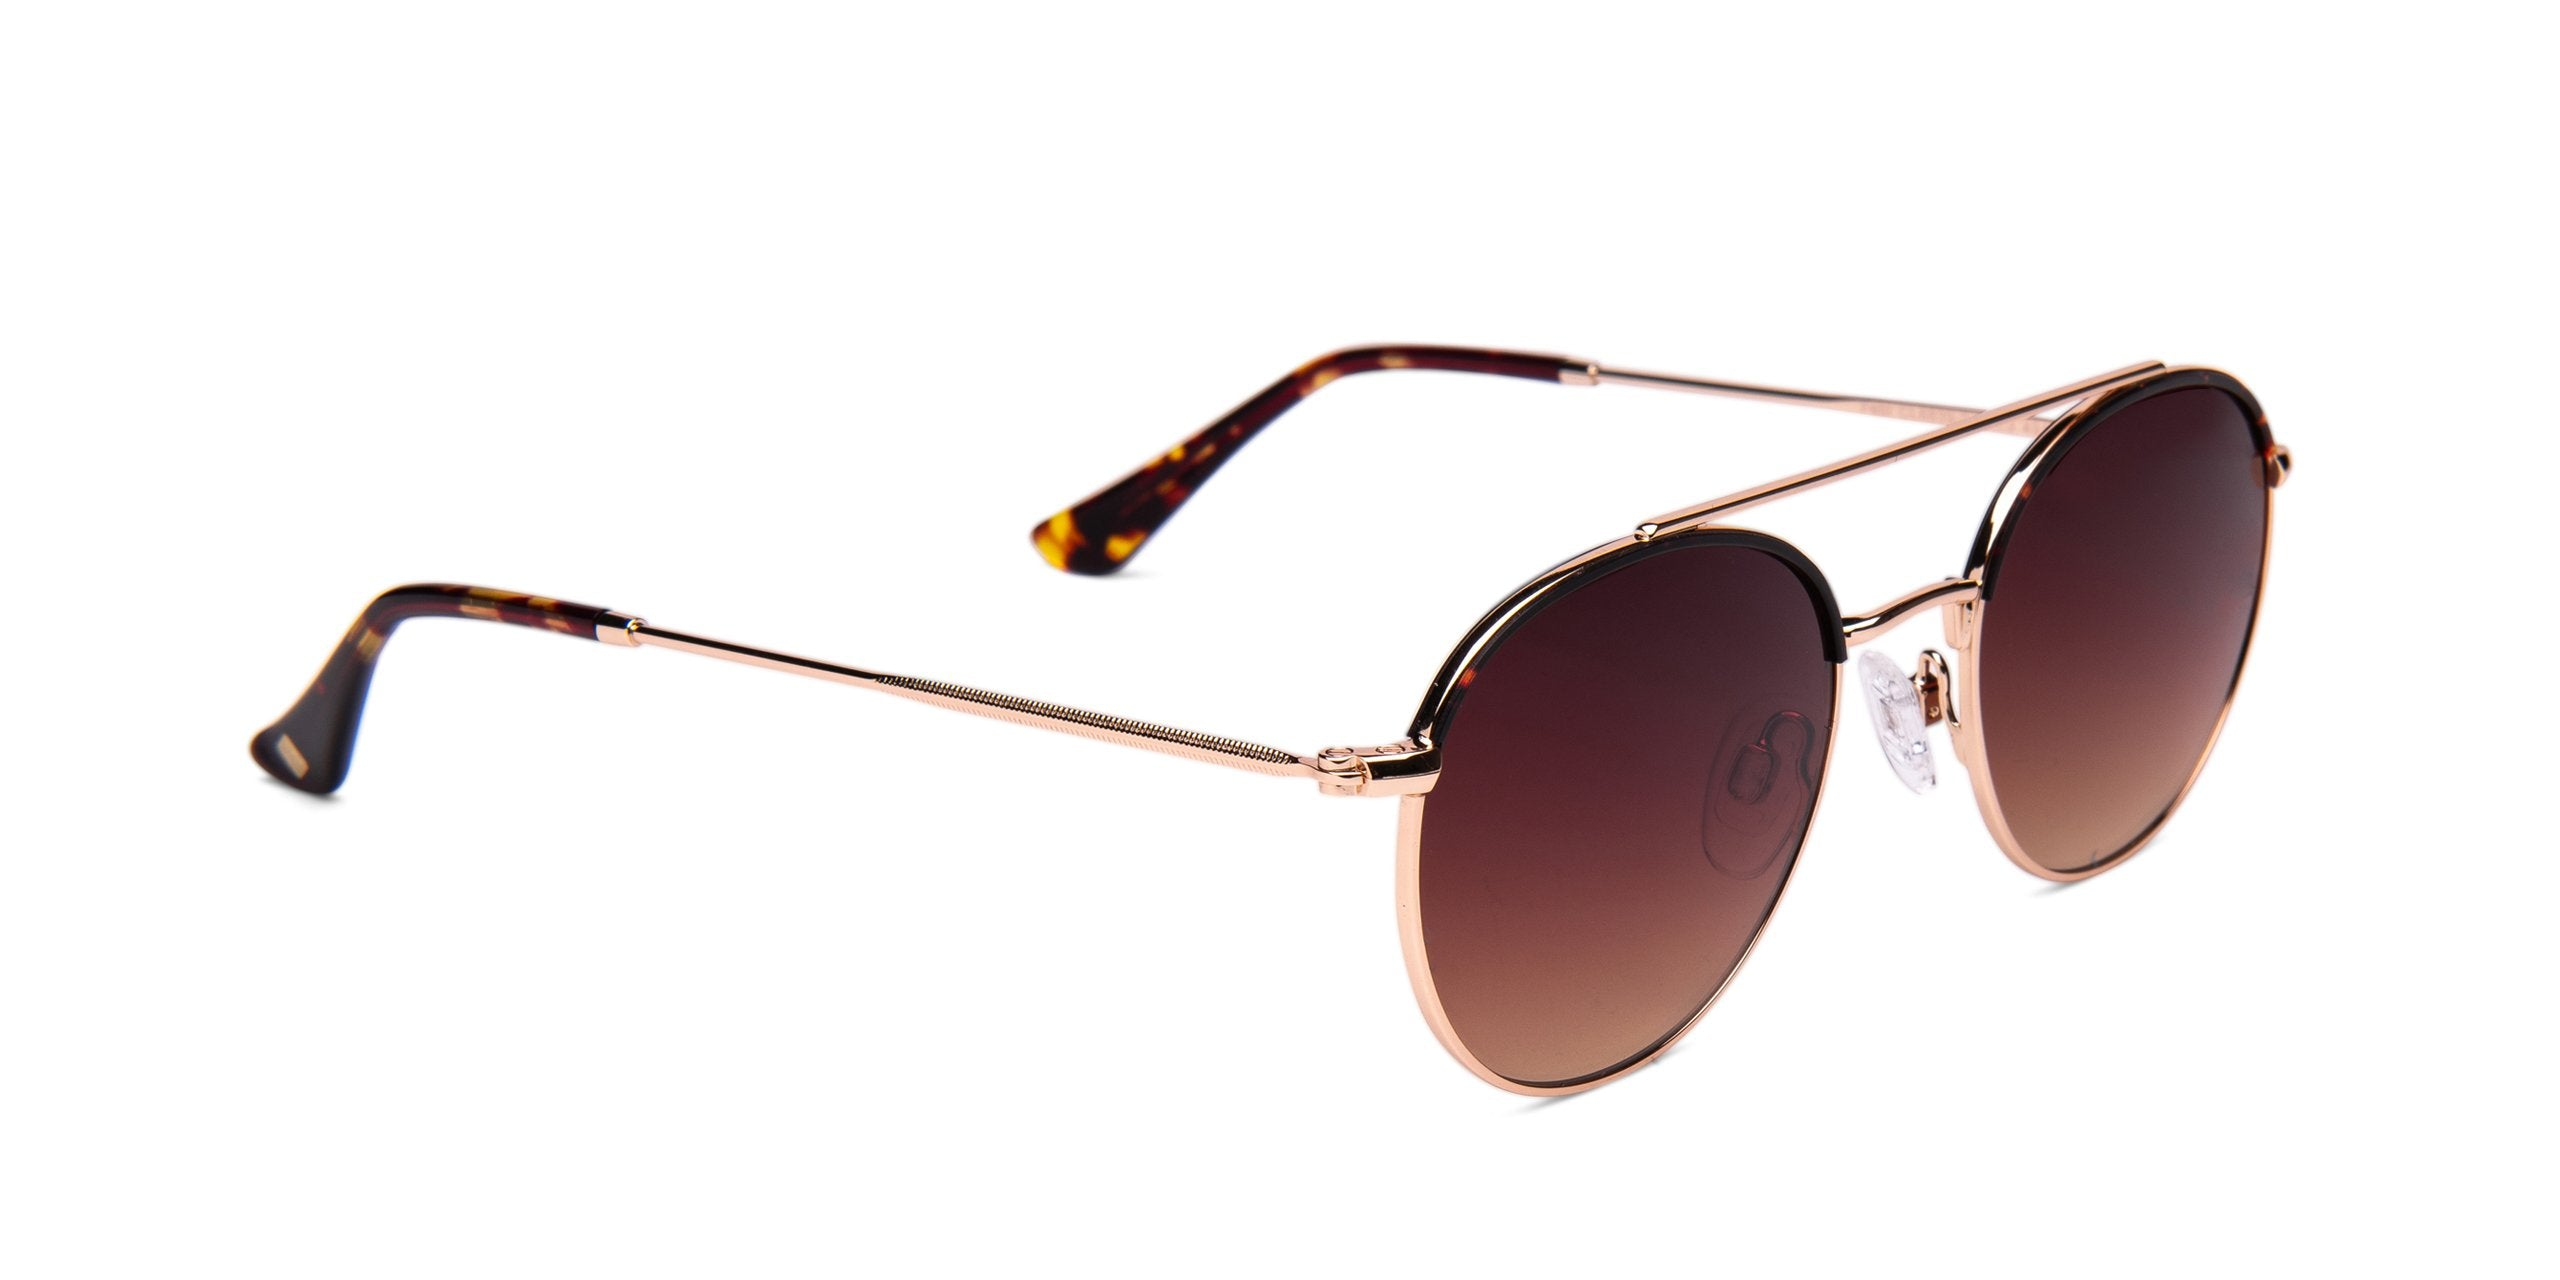 FRAME Tortoise Shell Gold LENS Gradient Brown